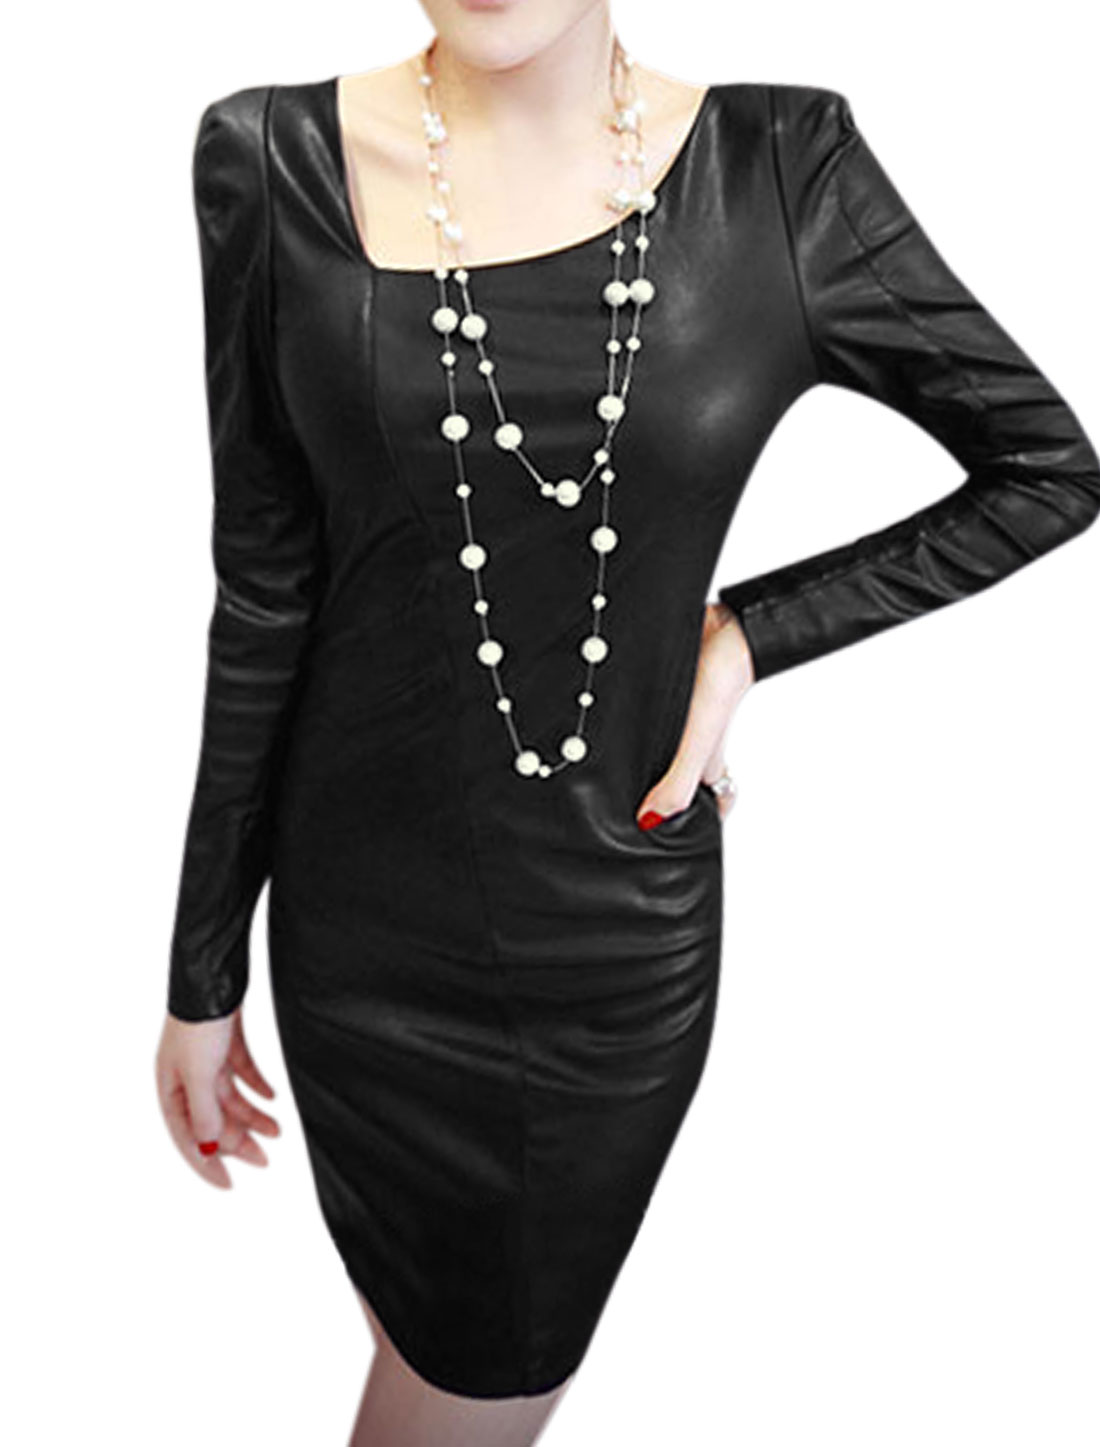 Women Assymetric Neck Long Sleeves Sexy Imitation Leather Dress Black S